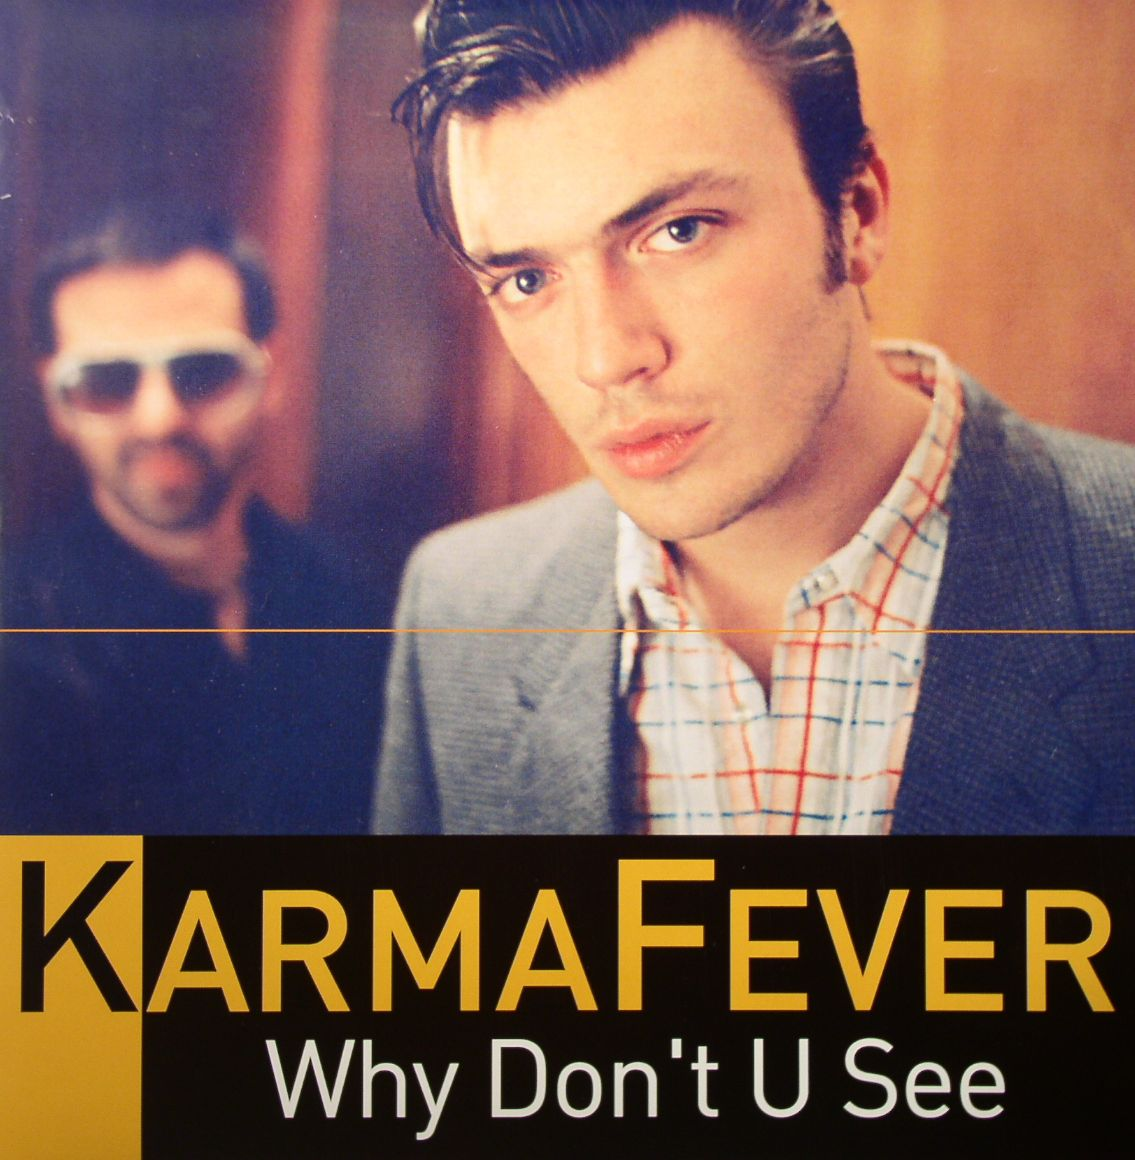 KARMA FEVER - Why Don't You See